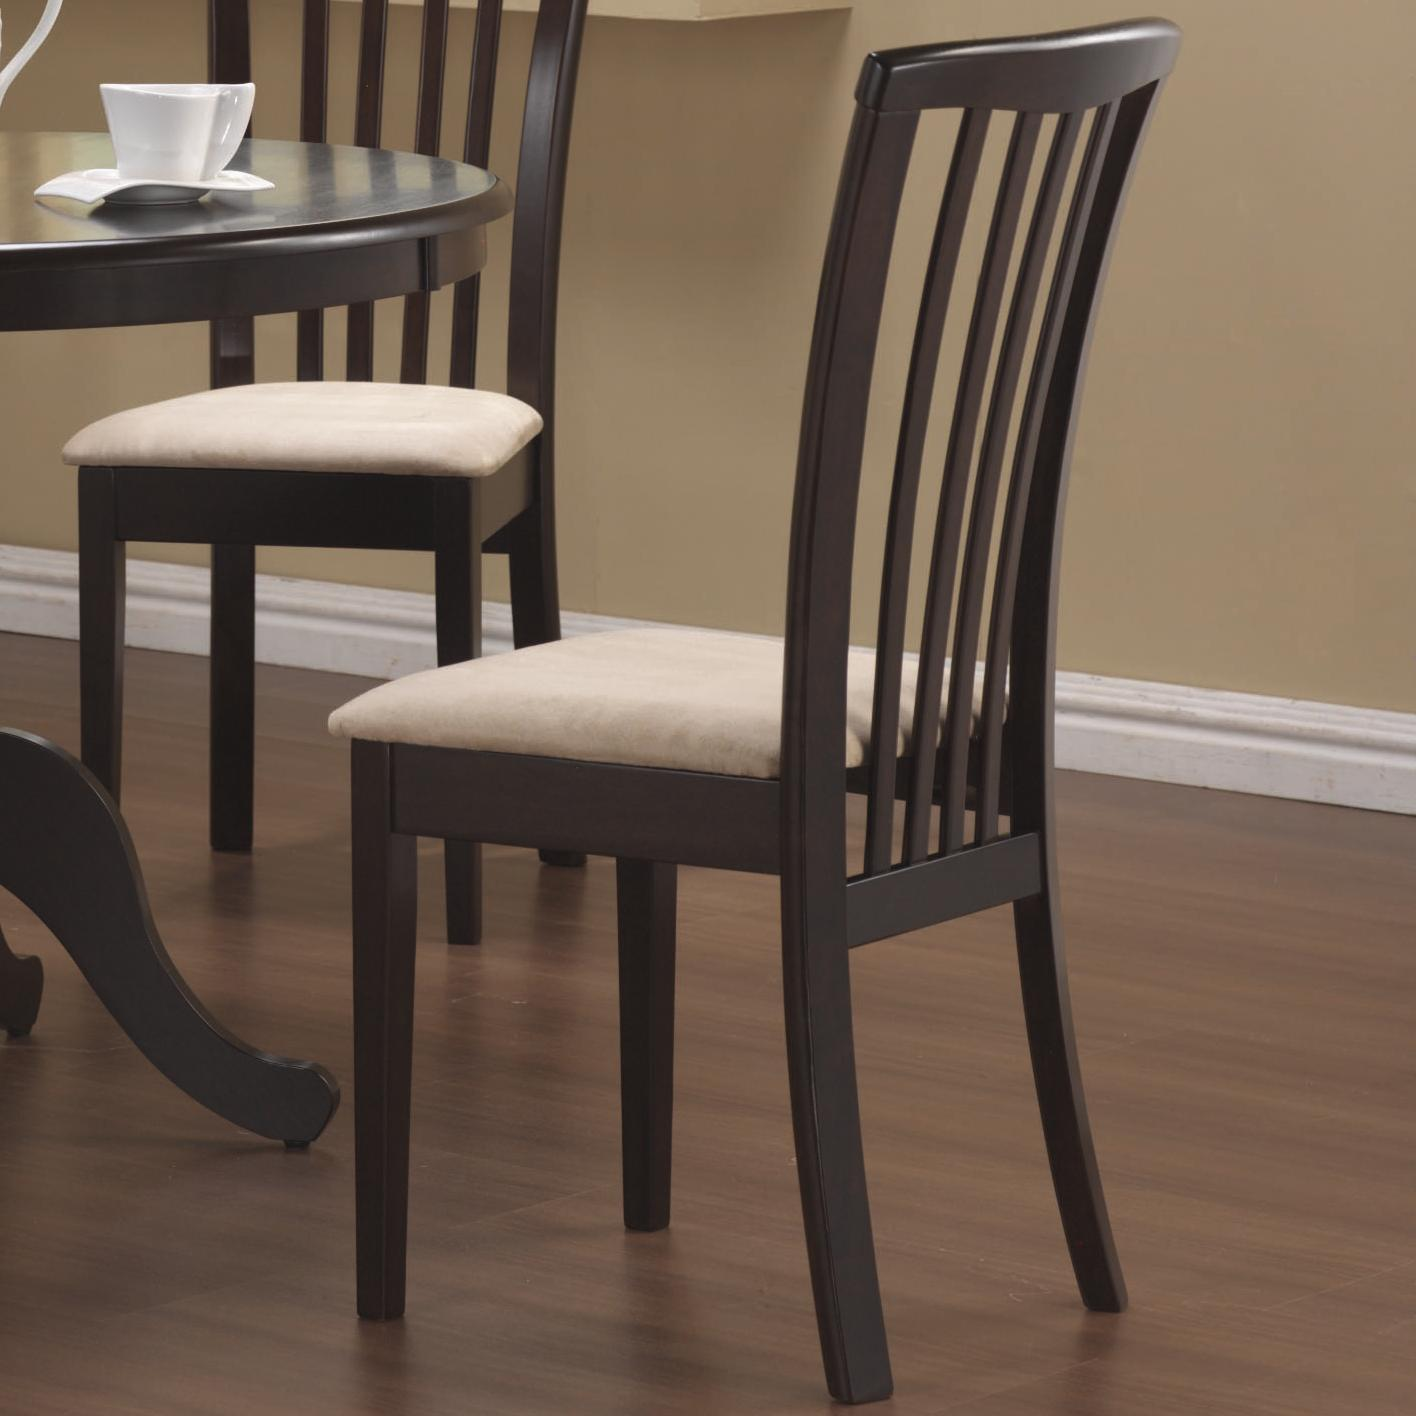 Chair Coasters Coaster Brannan Slat Back Side Chair With Upholstered Seat